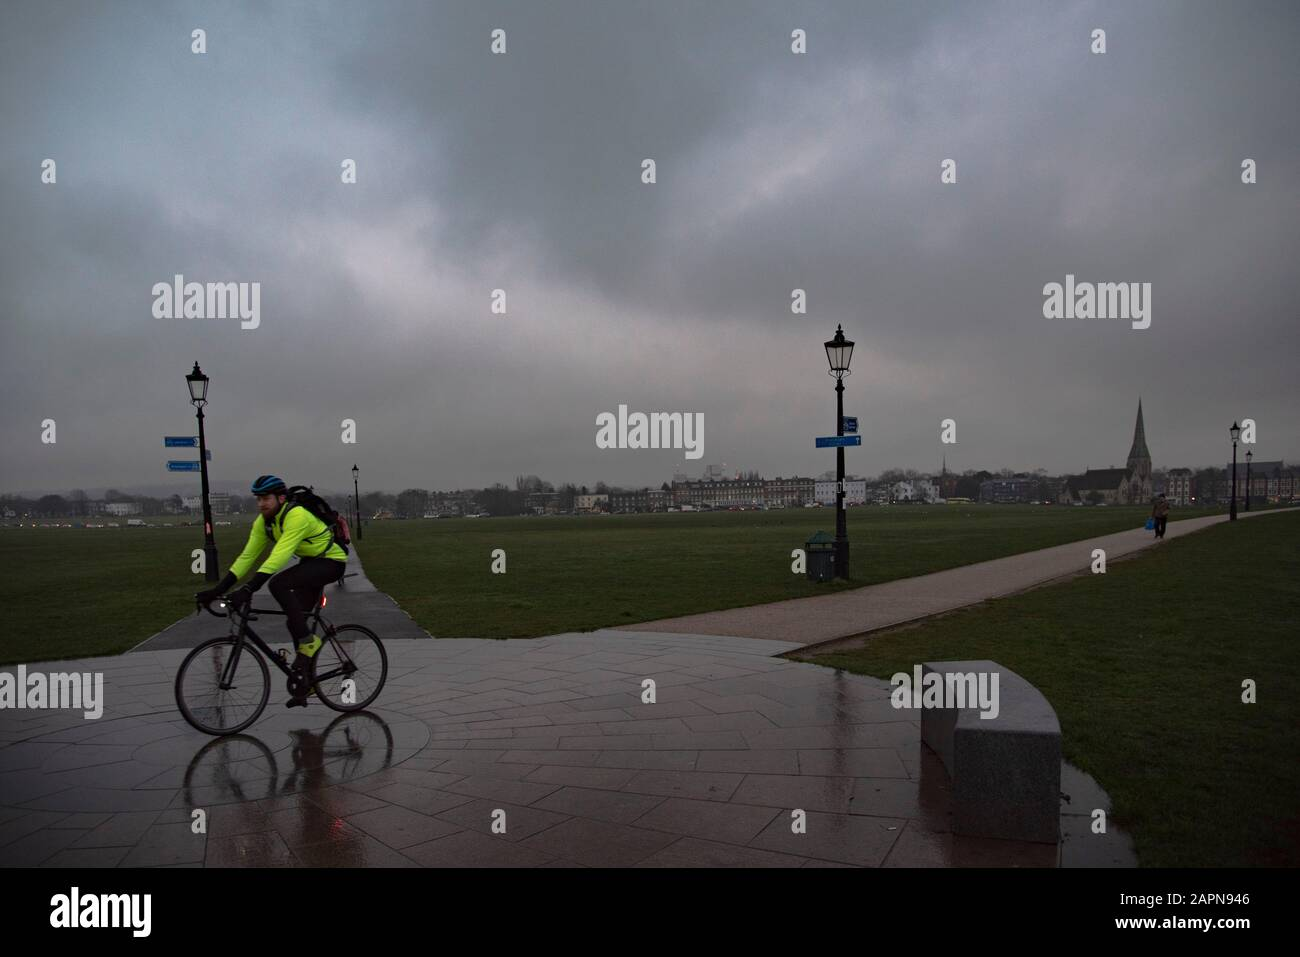 London, UK. 24th Jan, 2020. Low cloud and drizzle in Blackheath South- East London. Credit: claire doherty/Alamy Live News Stock Photo